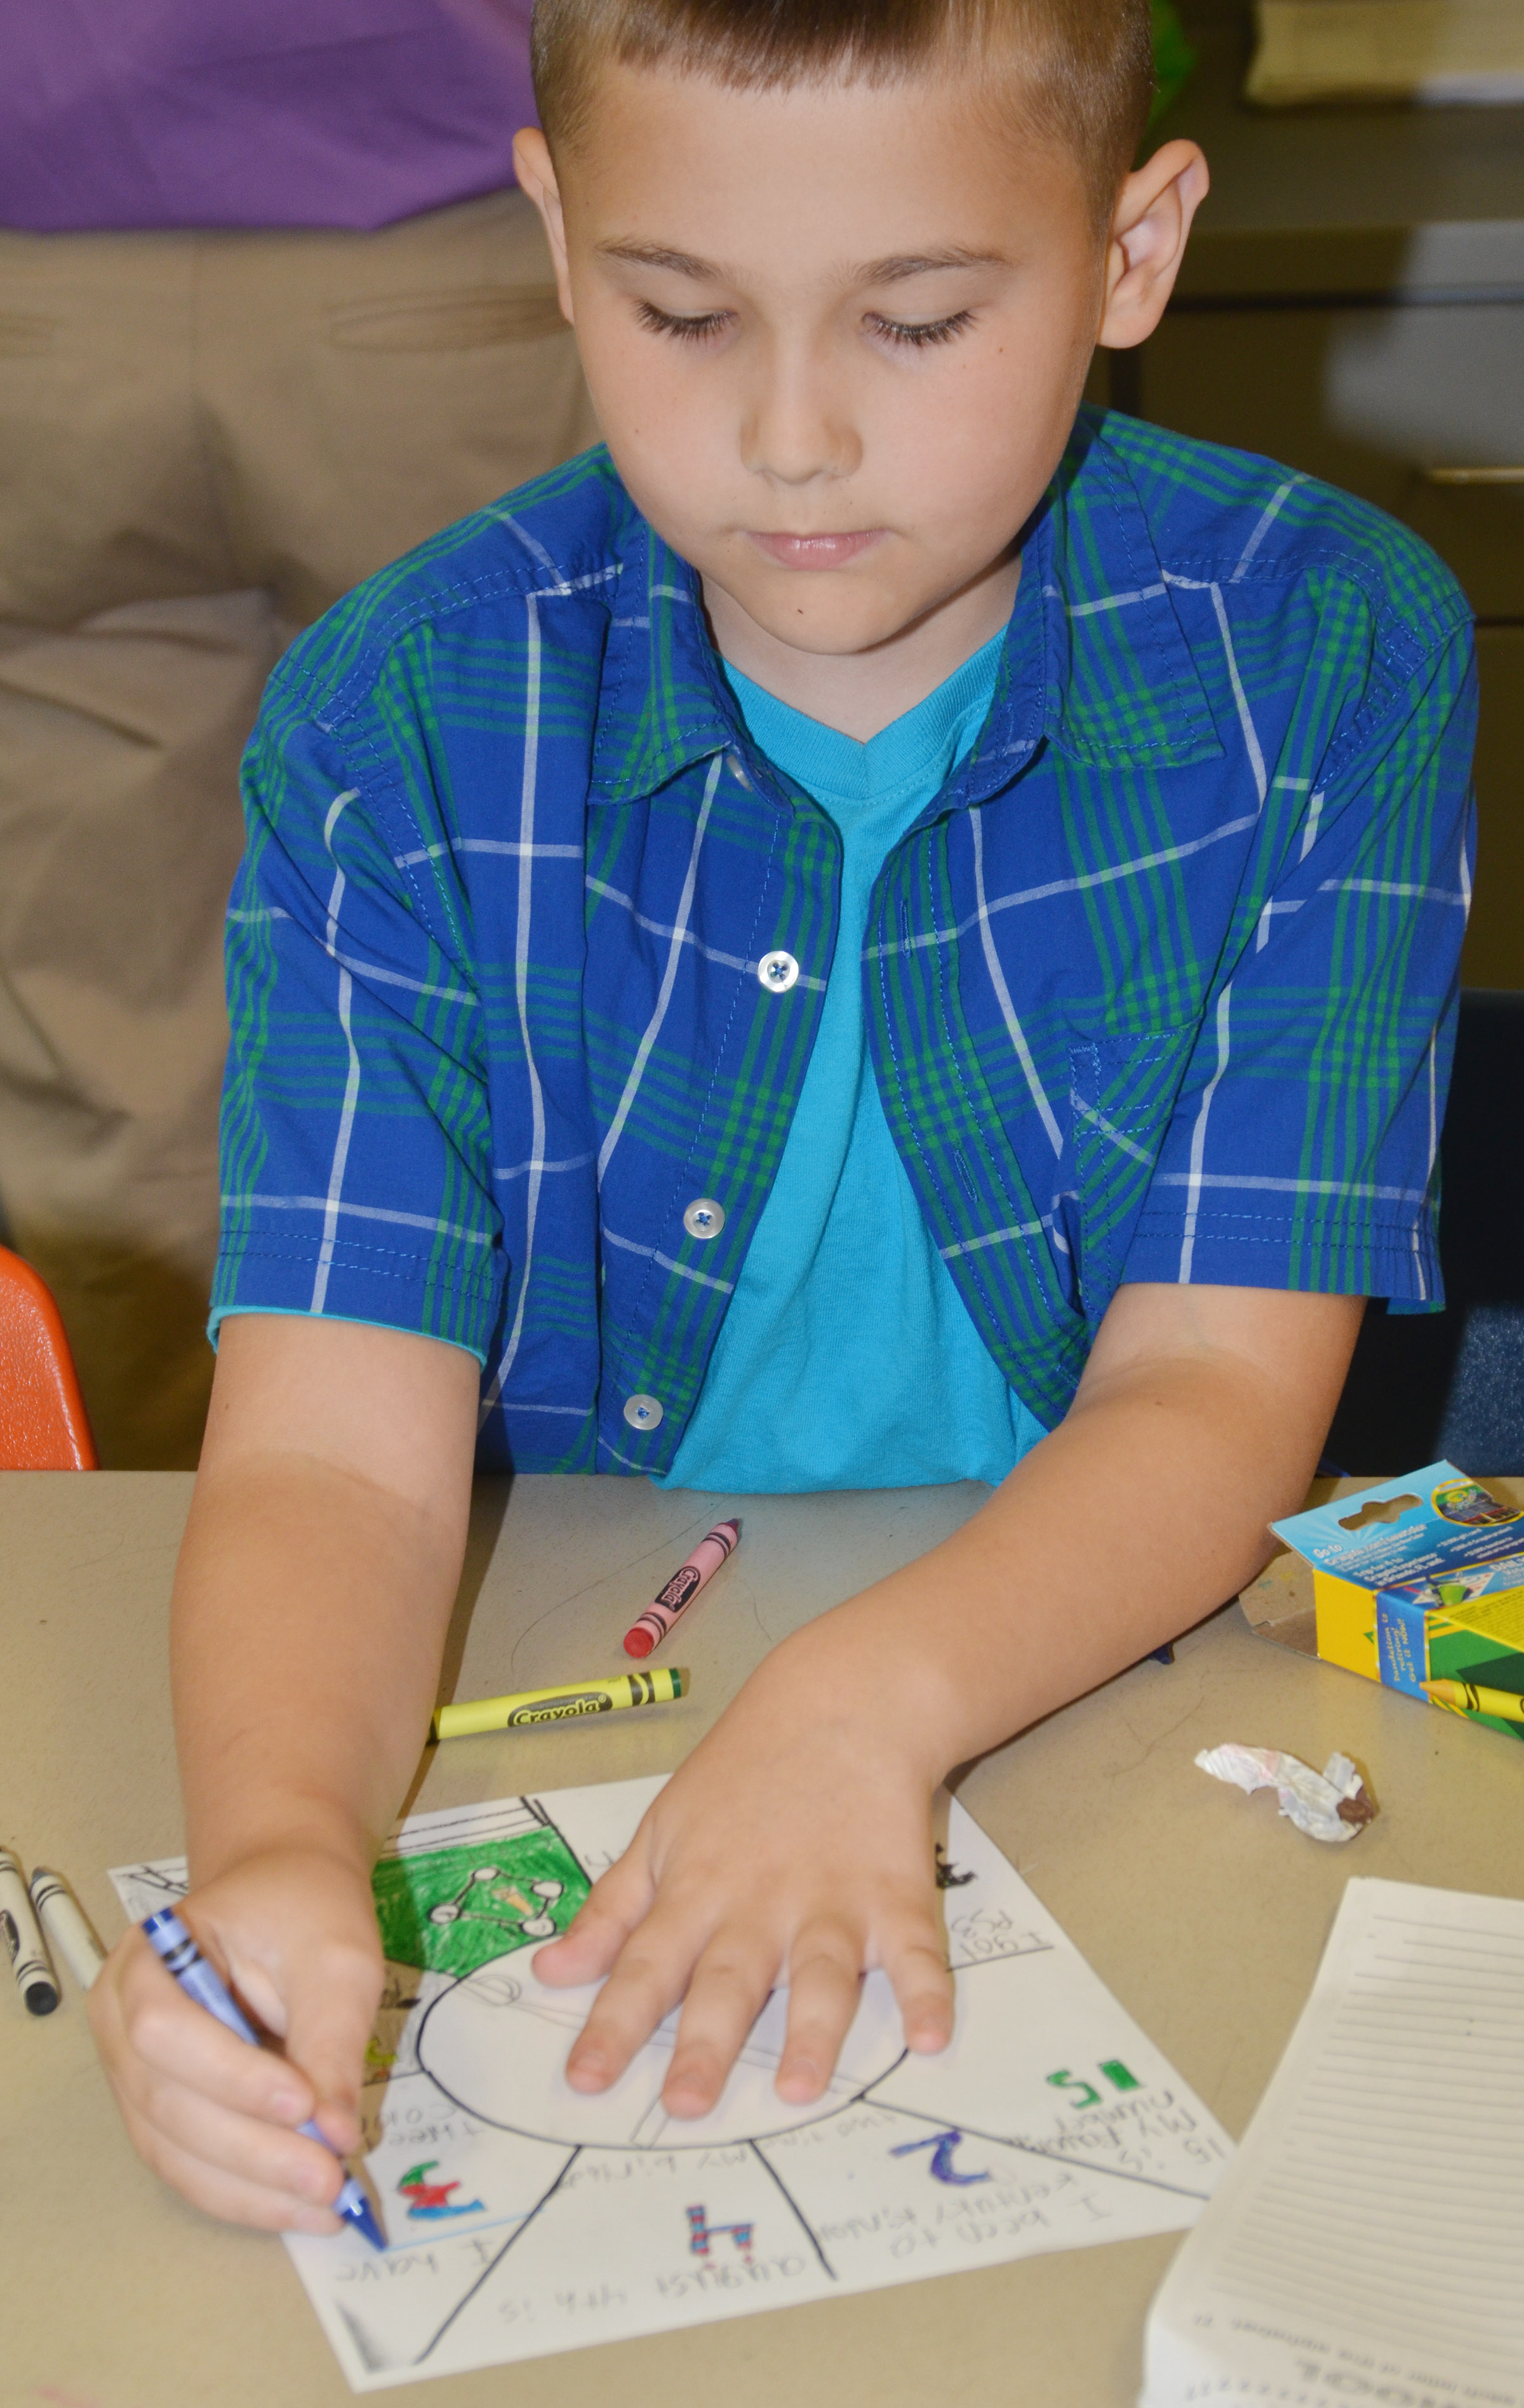 CES fifth-grader Michael Abel completes an assignment to help his teacher learn about him.